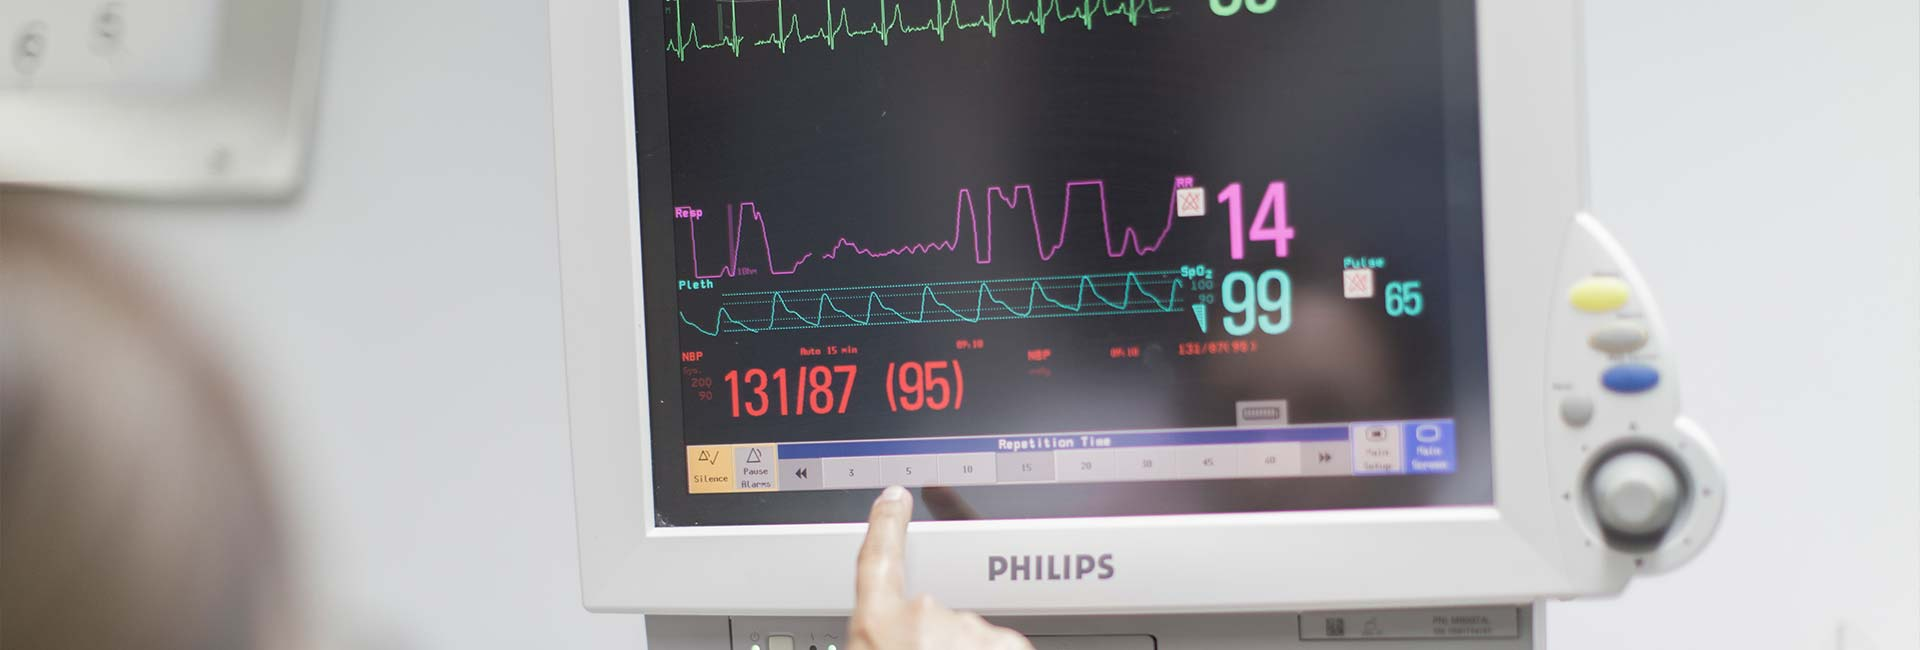 Cardiology Monitoring Equipment